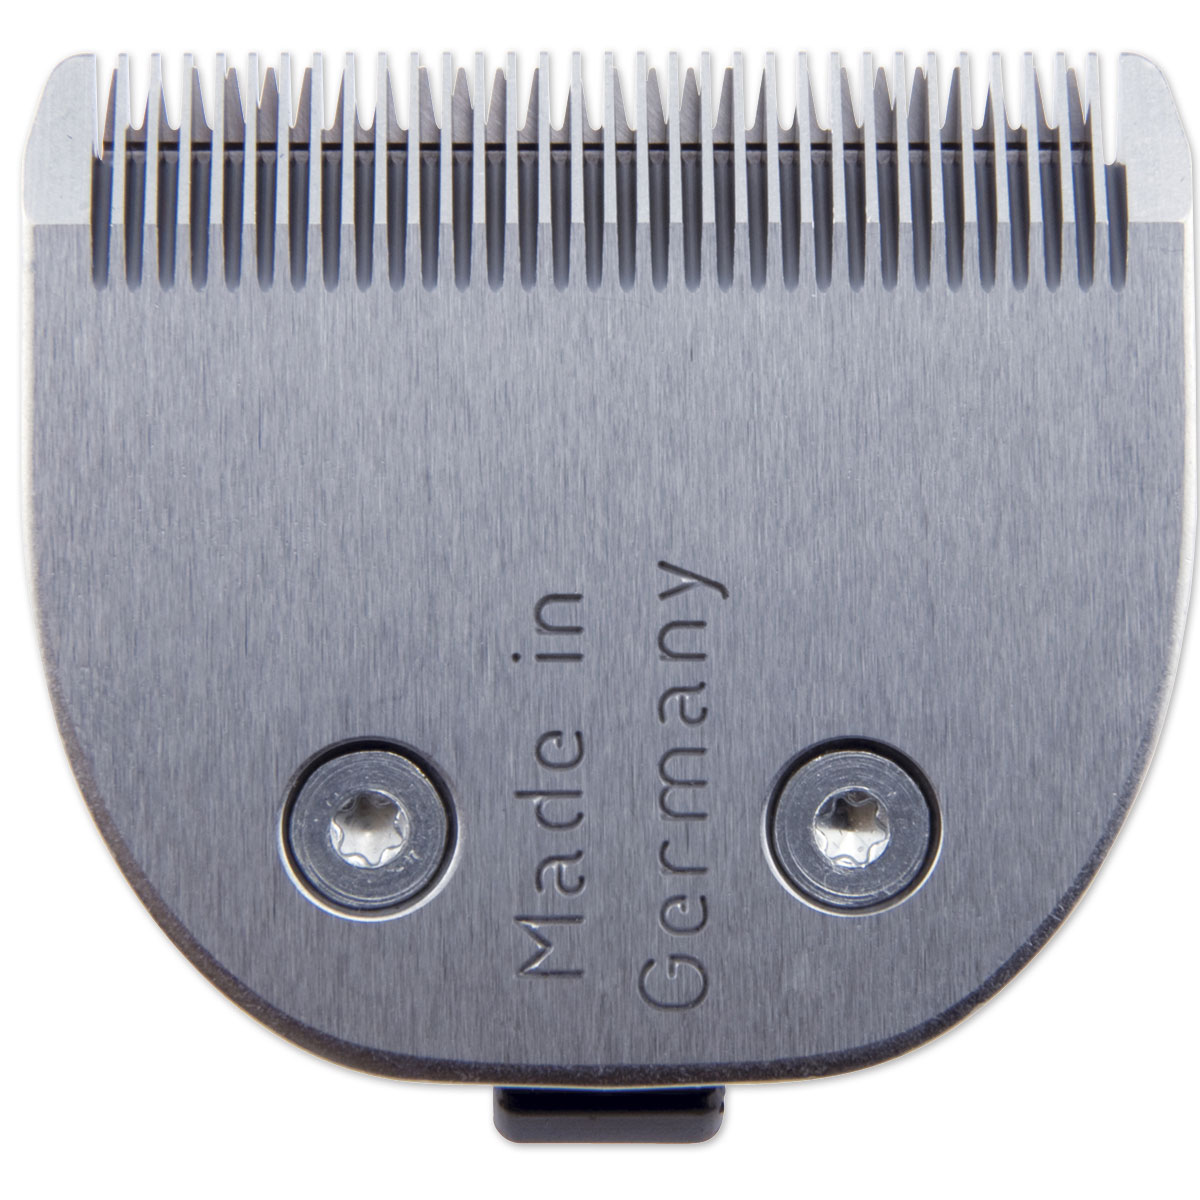 Wahl Mini Arco Replacement Blade